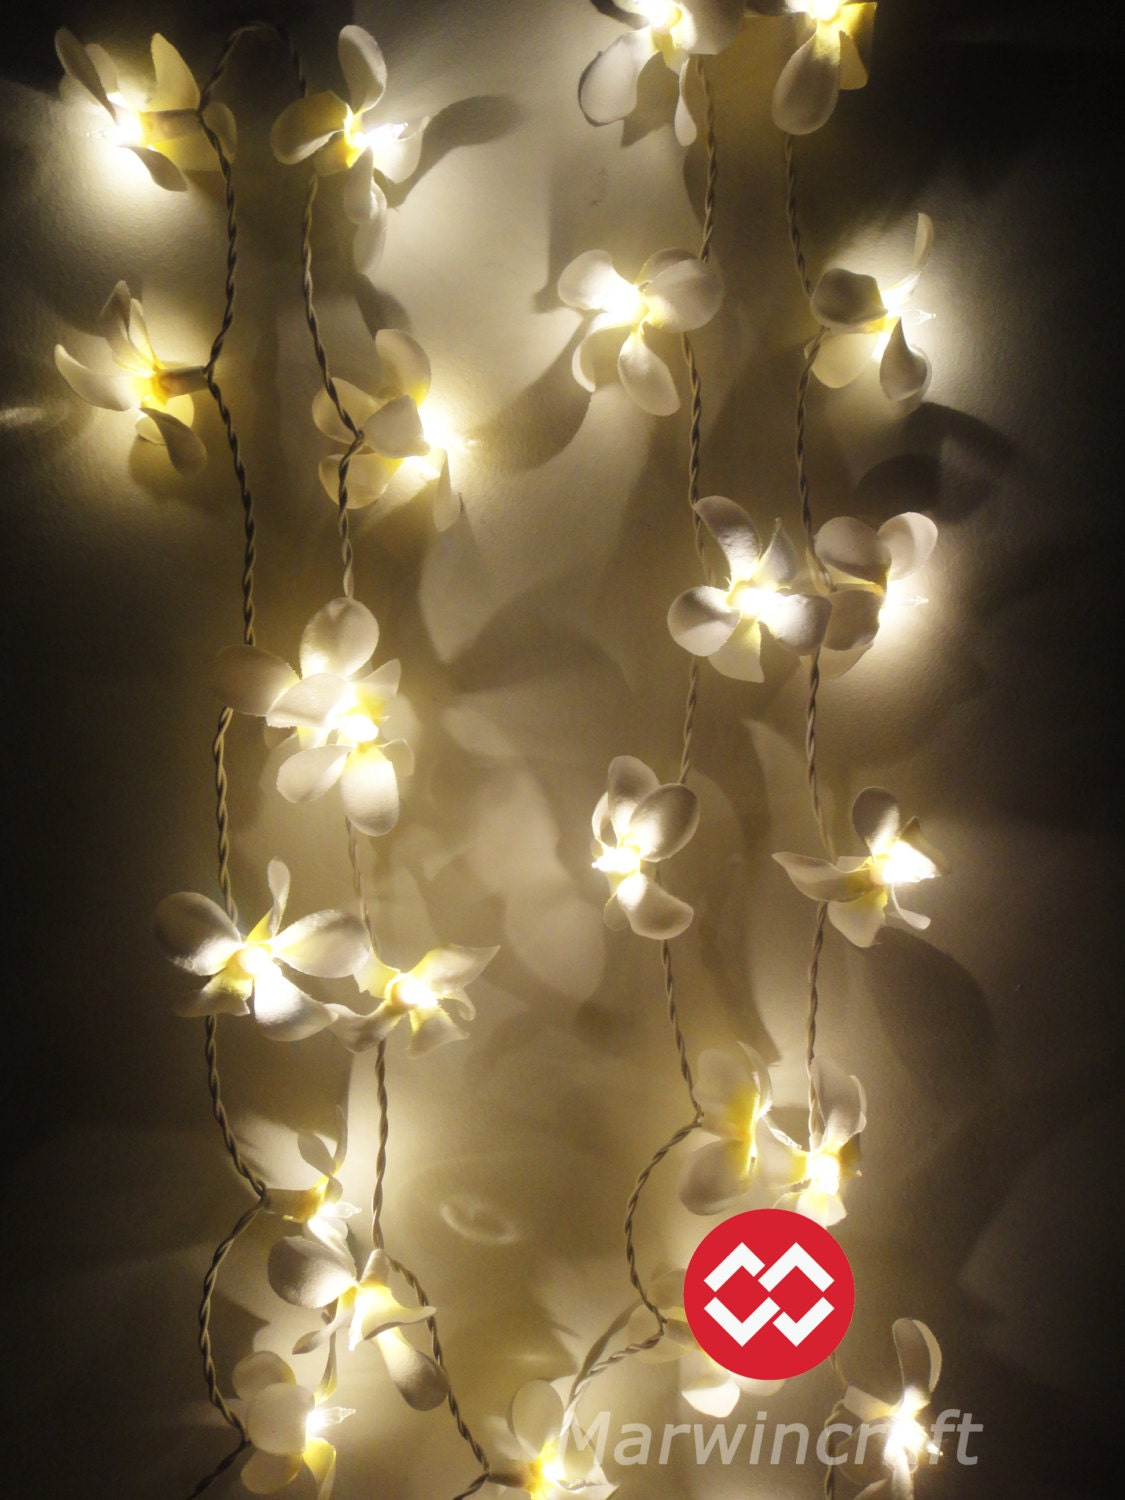 35 Globes White Frangipani Fairy Lights String Accent Floral